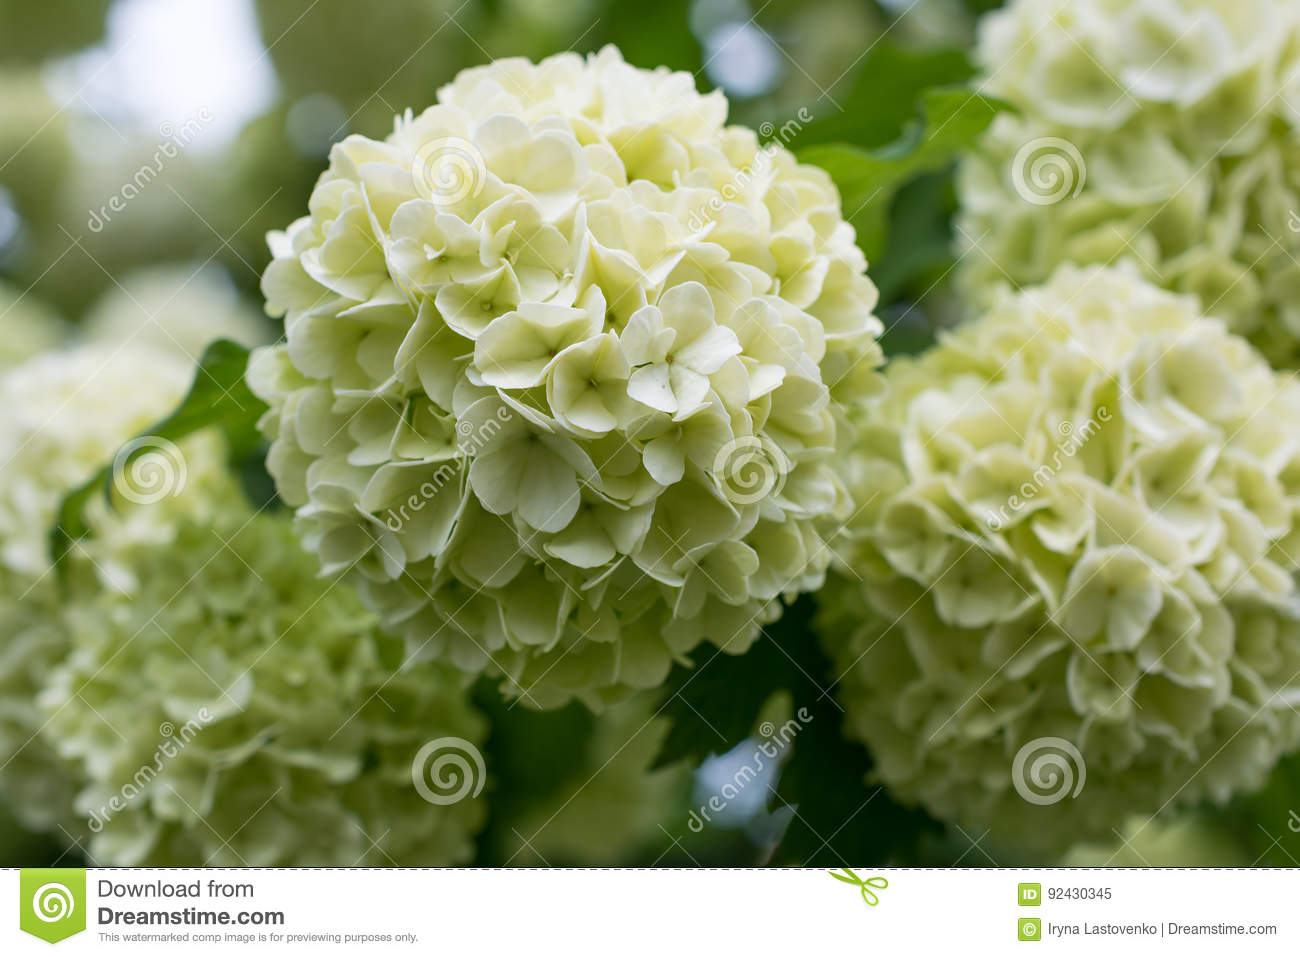 White flowers of viburnum snow ball in spring garden stock image download white flowers of viburnum snow ball in spring garden stock image image of mightylinksfo